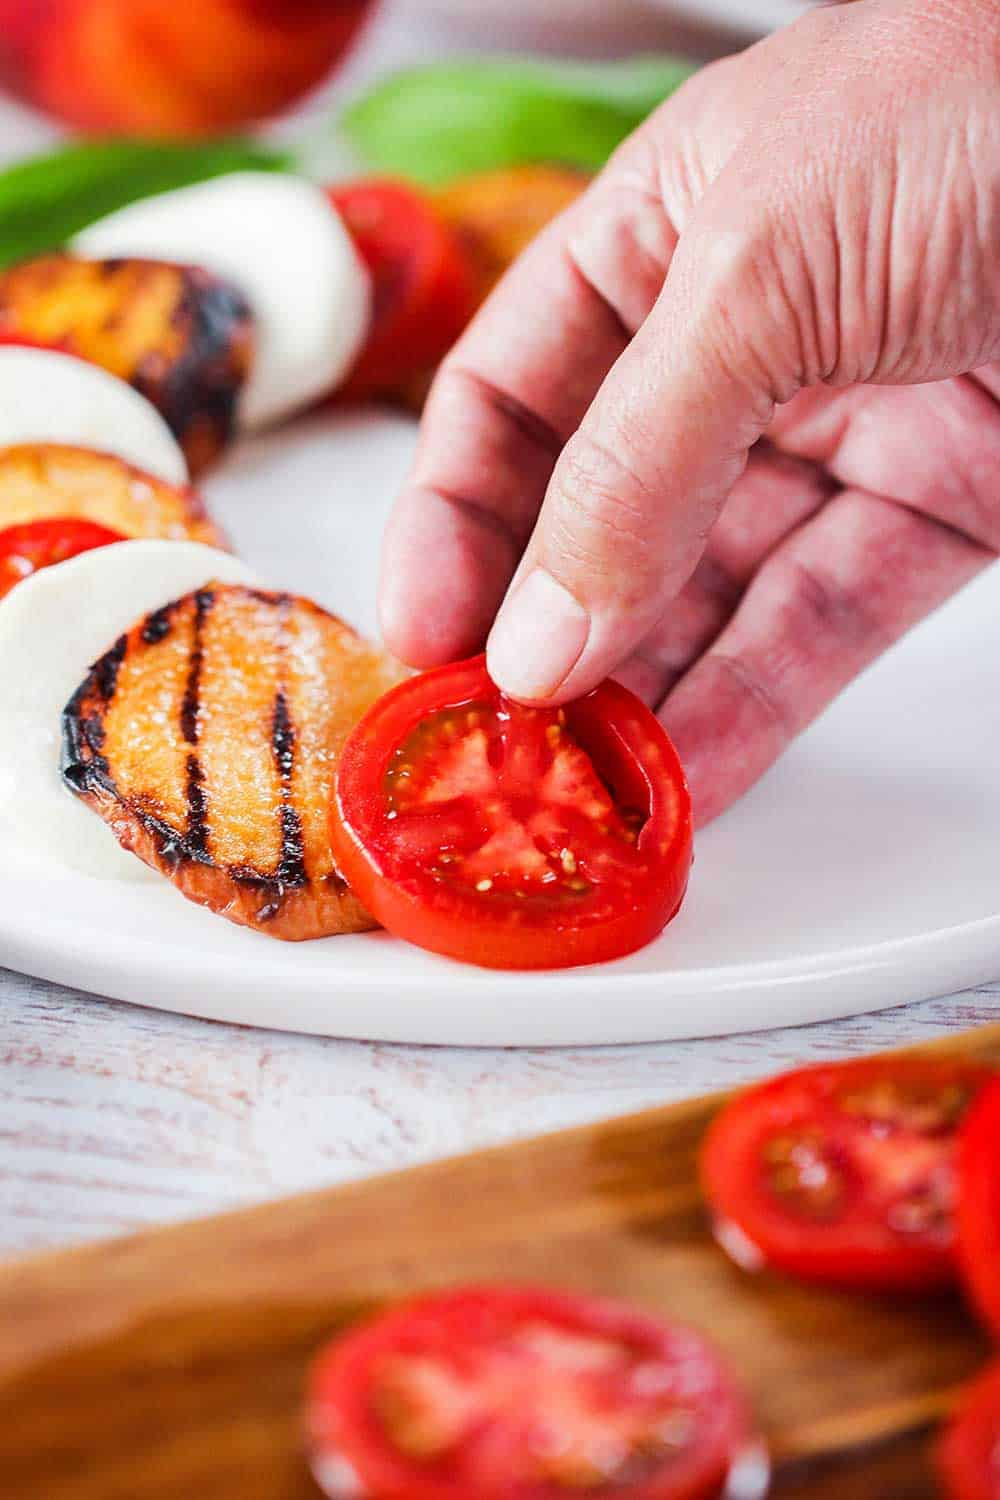 A hand layering a tomato for caprese salad with grilled peaches on a white plate.